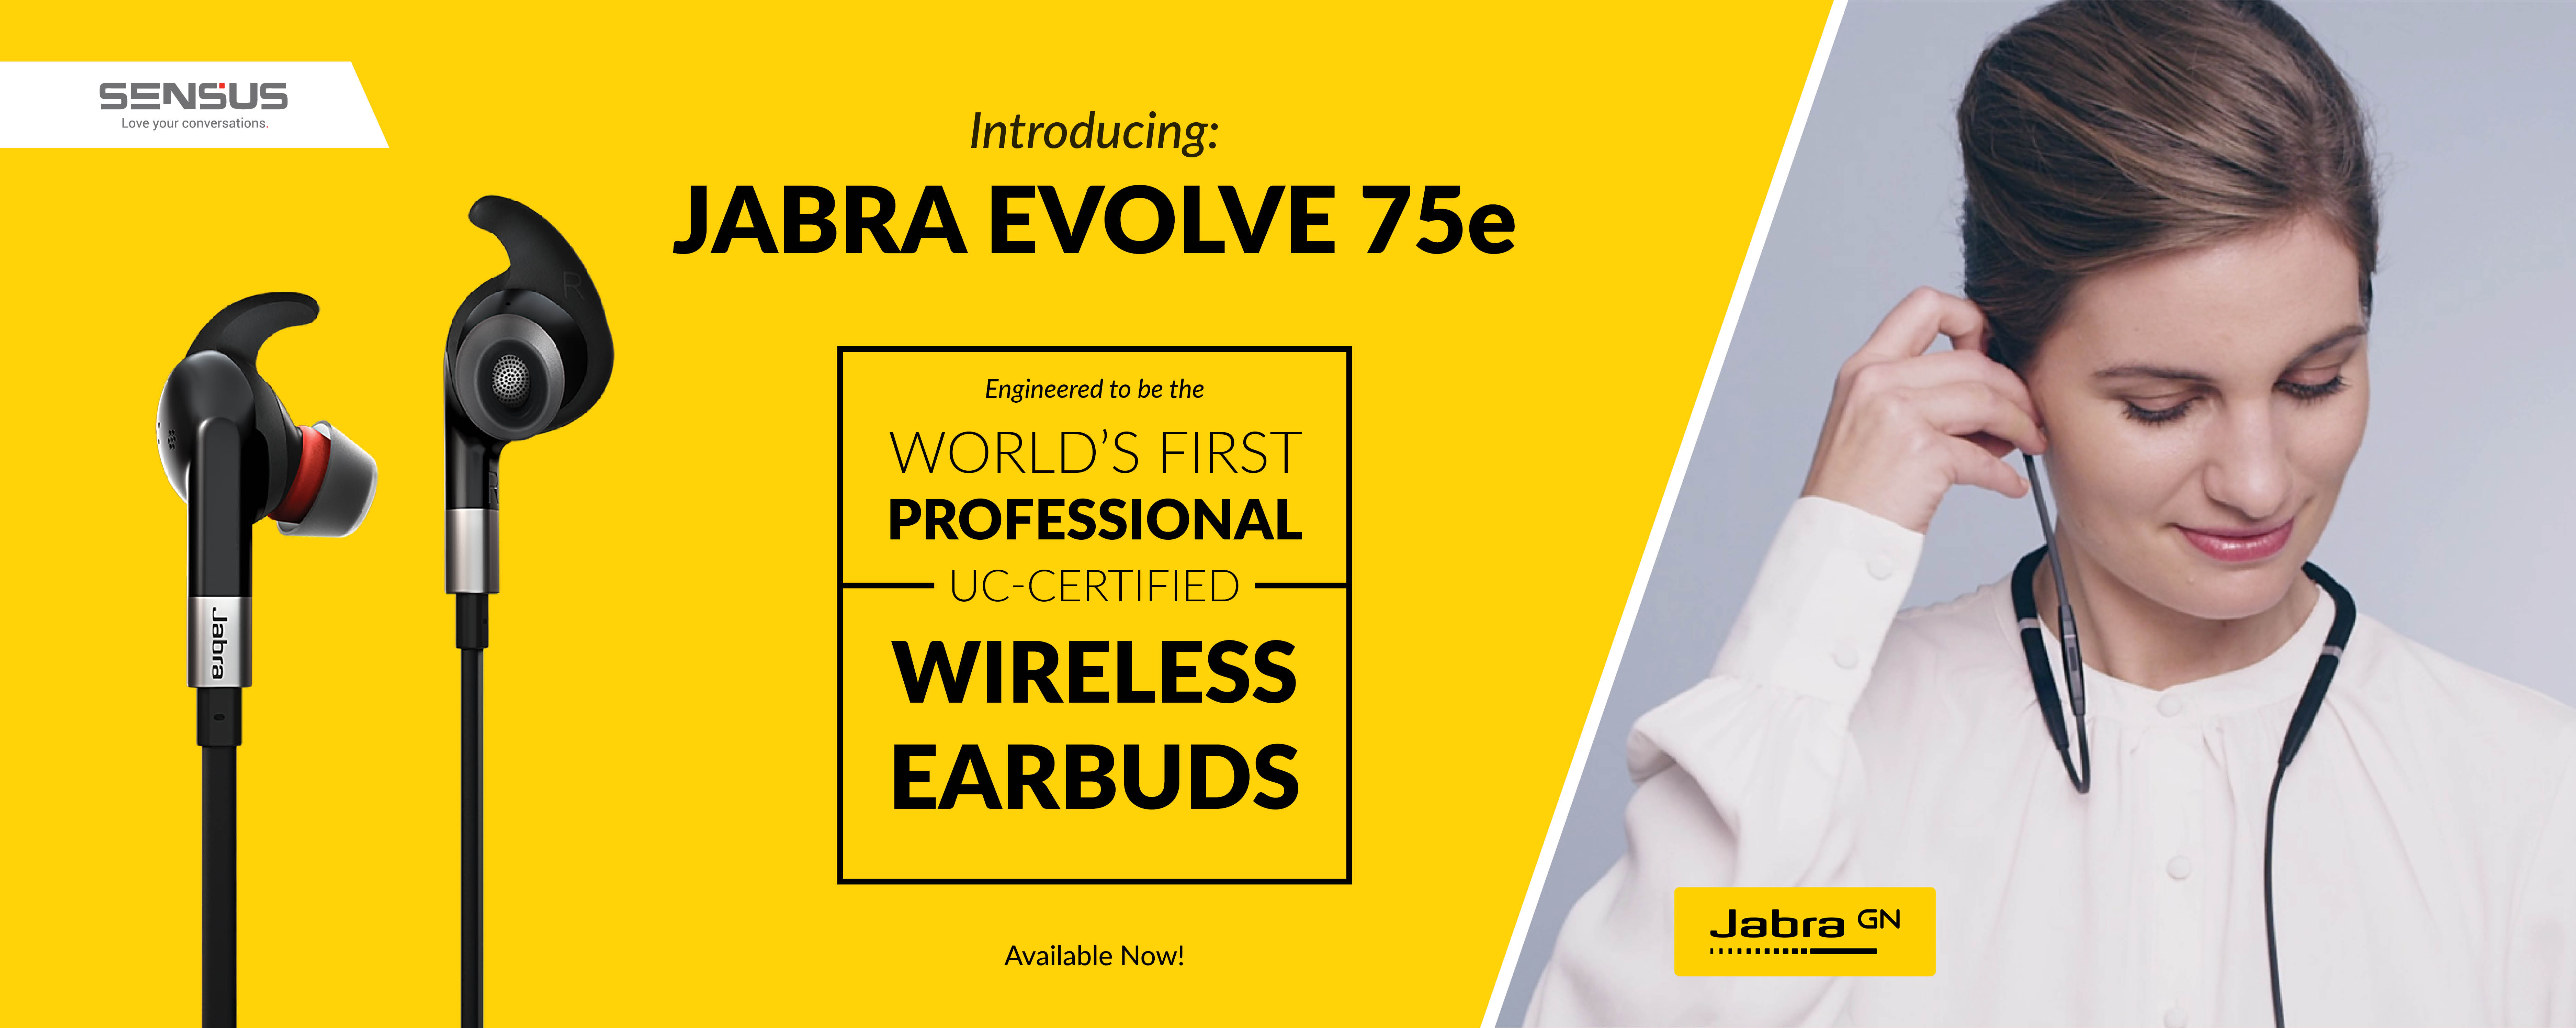 Buy Jabra Evolve 75e from SENSUS